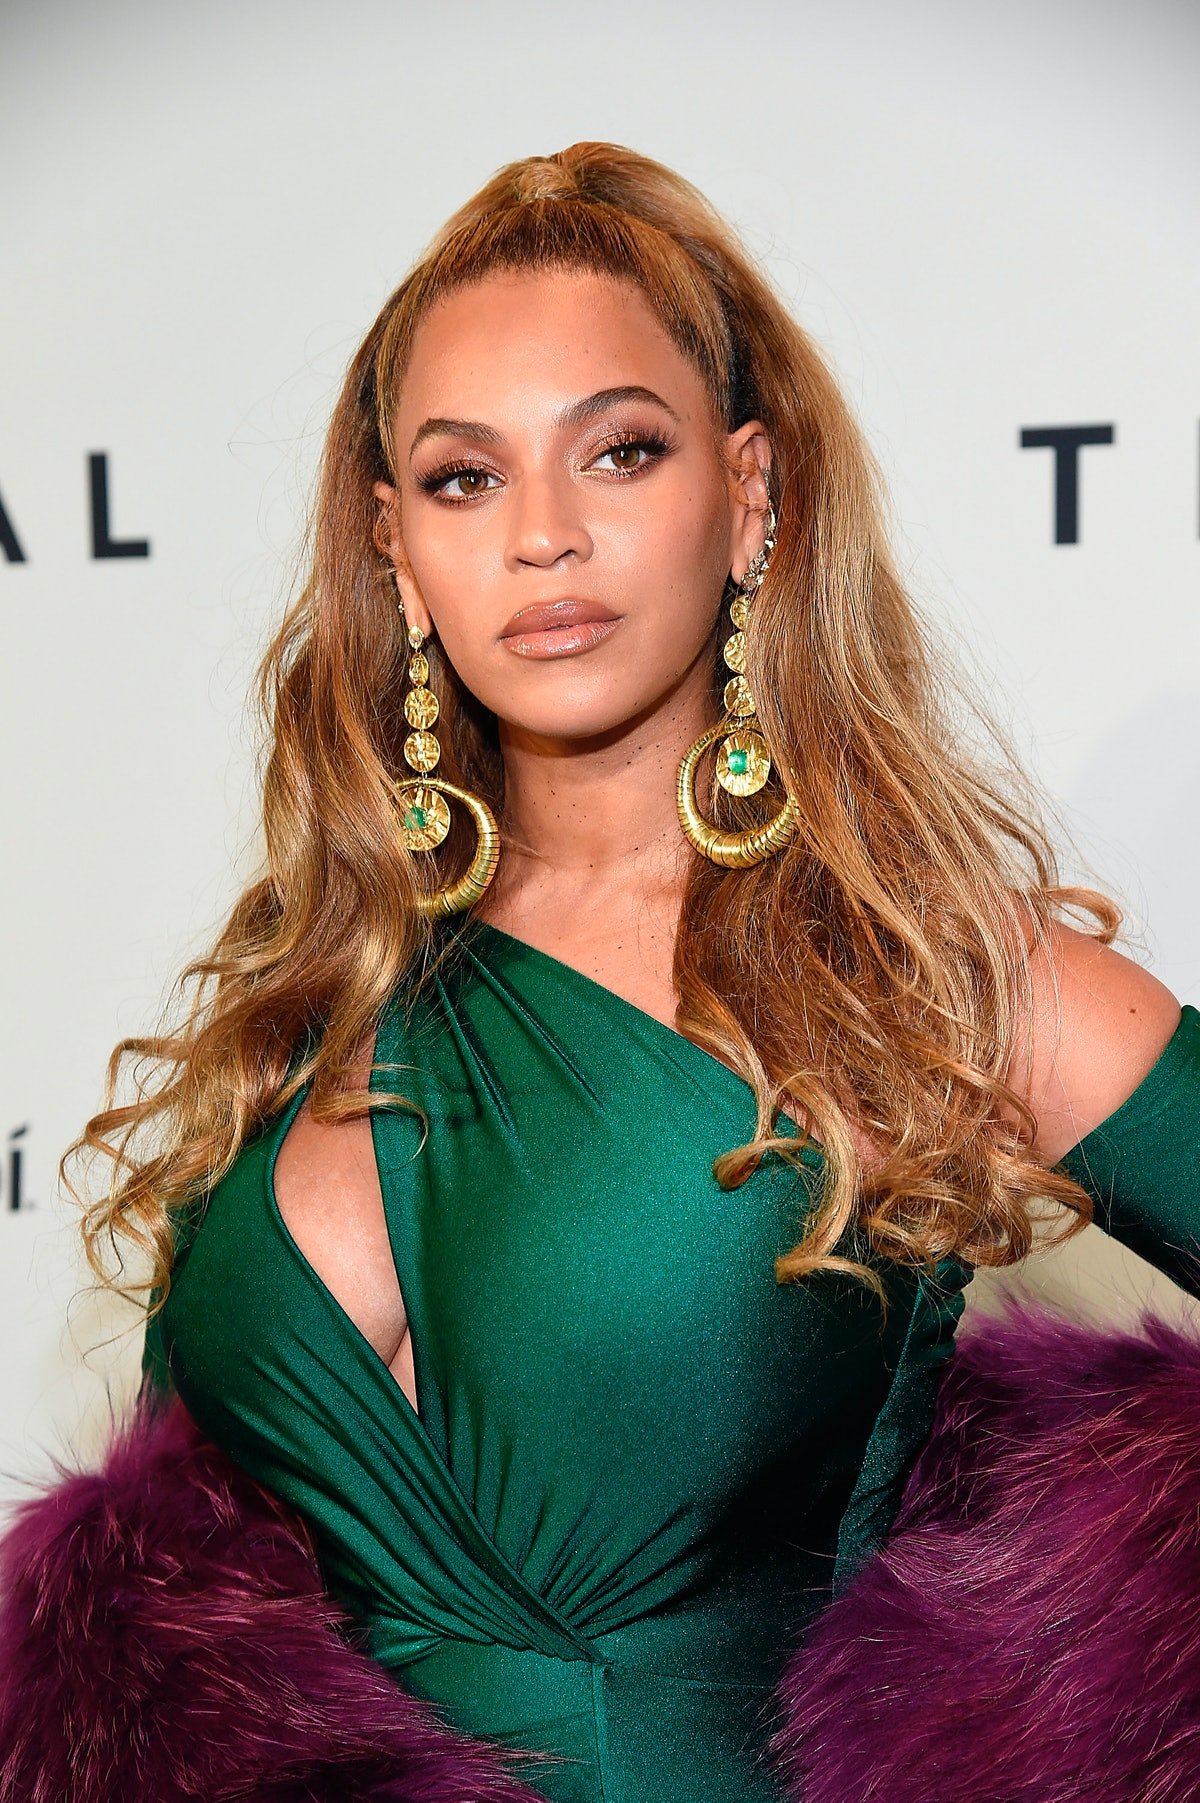 Beyoncé attends TIDAL X: Brooklyn at Barclays Center on October 17, 2017.